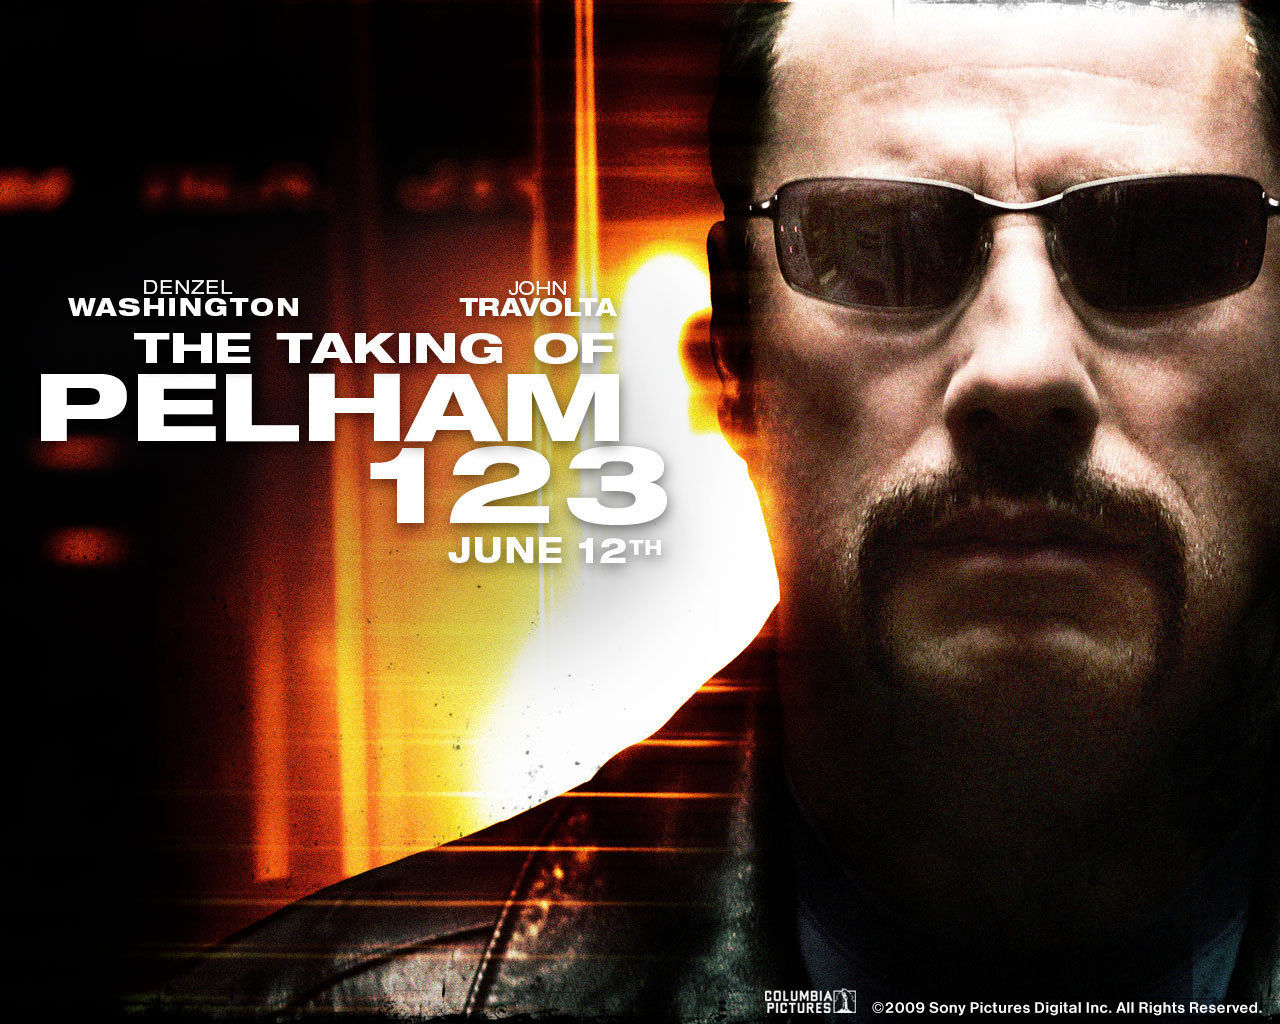 The taking of pelham 123 images john travolta 1 hd for The pelham